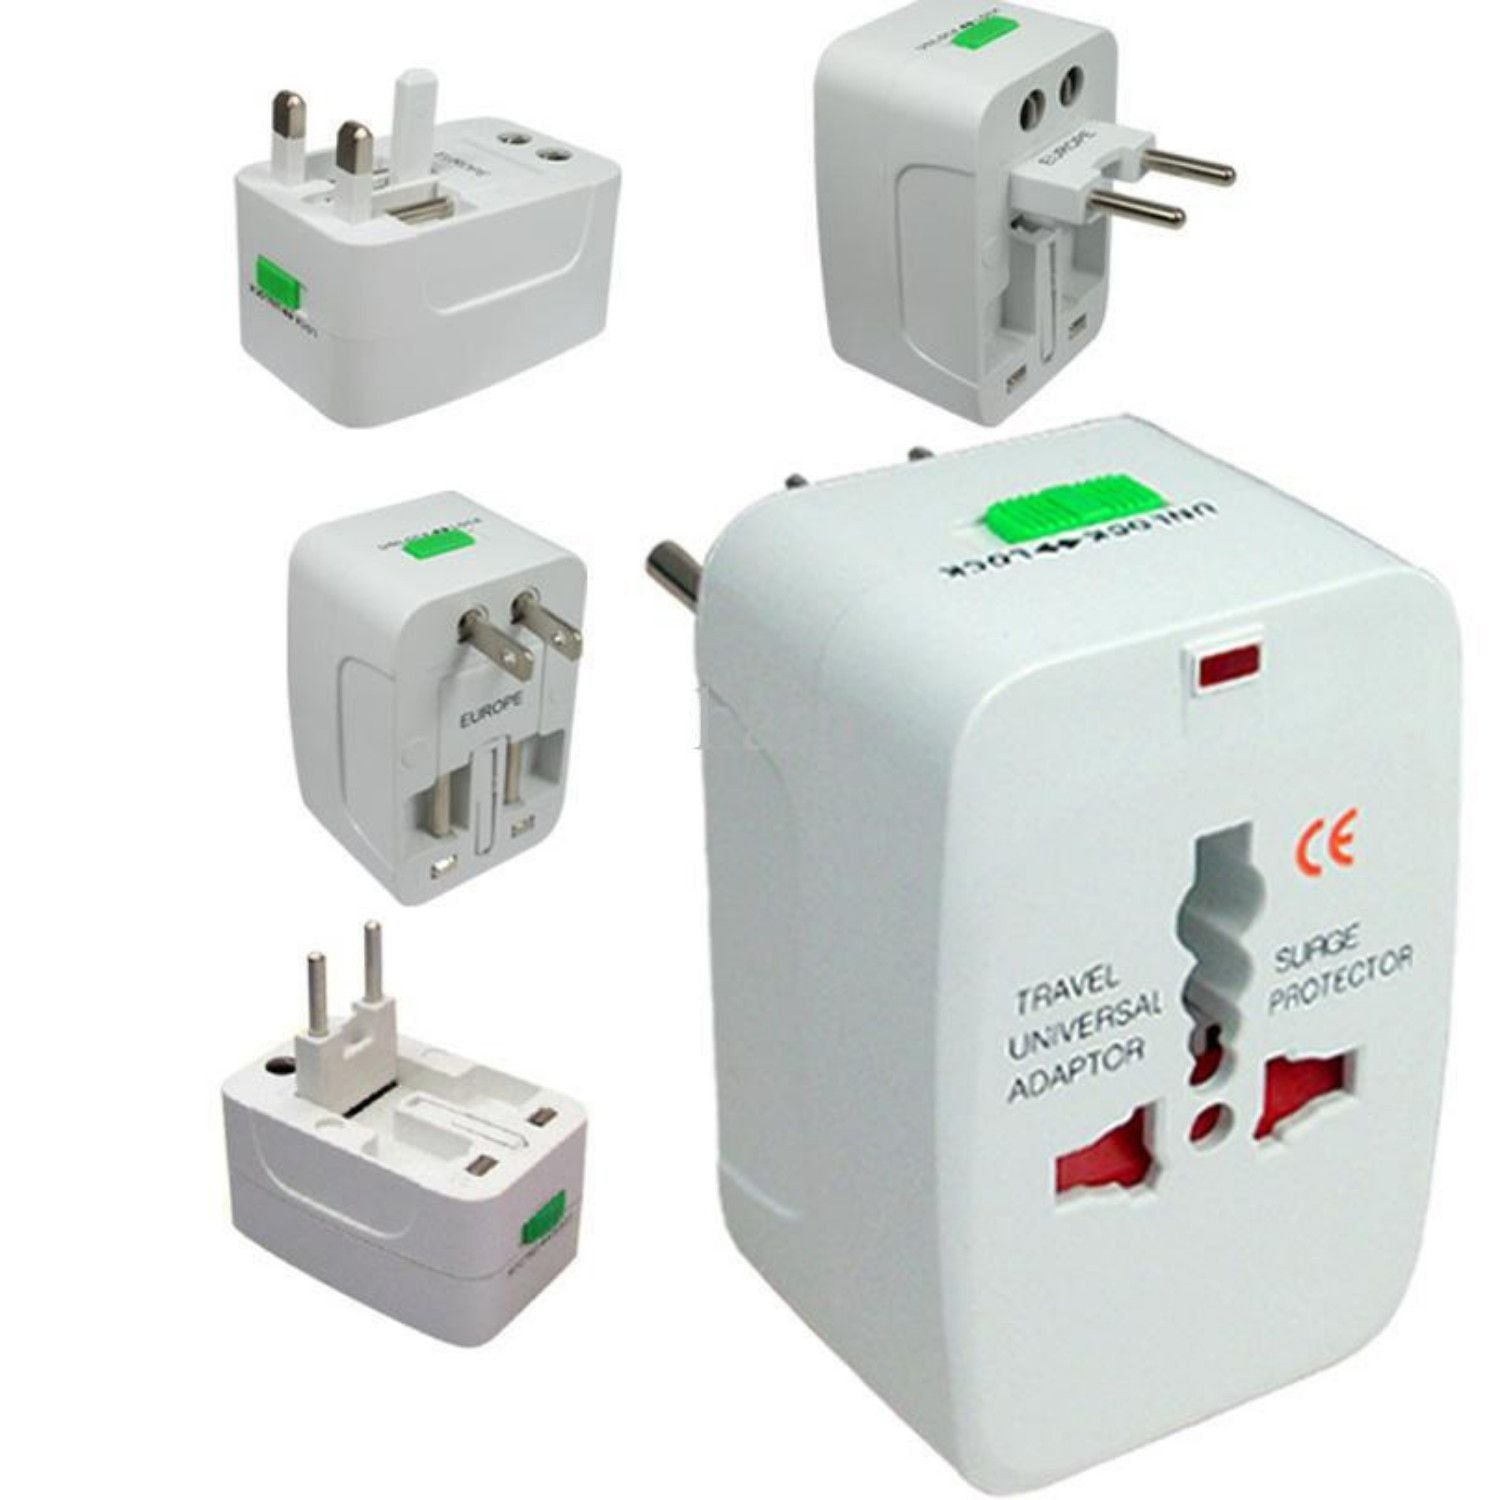 All In One Universal Worldwide Travel Adaptor  1pc.  by Yugg Enterprises